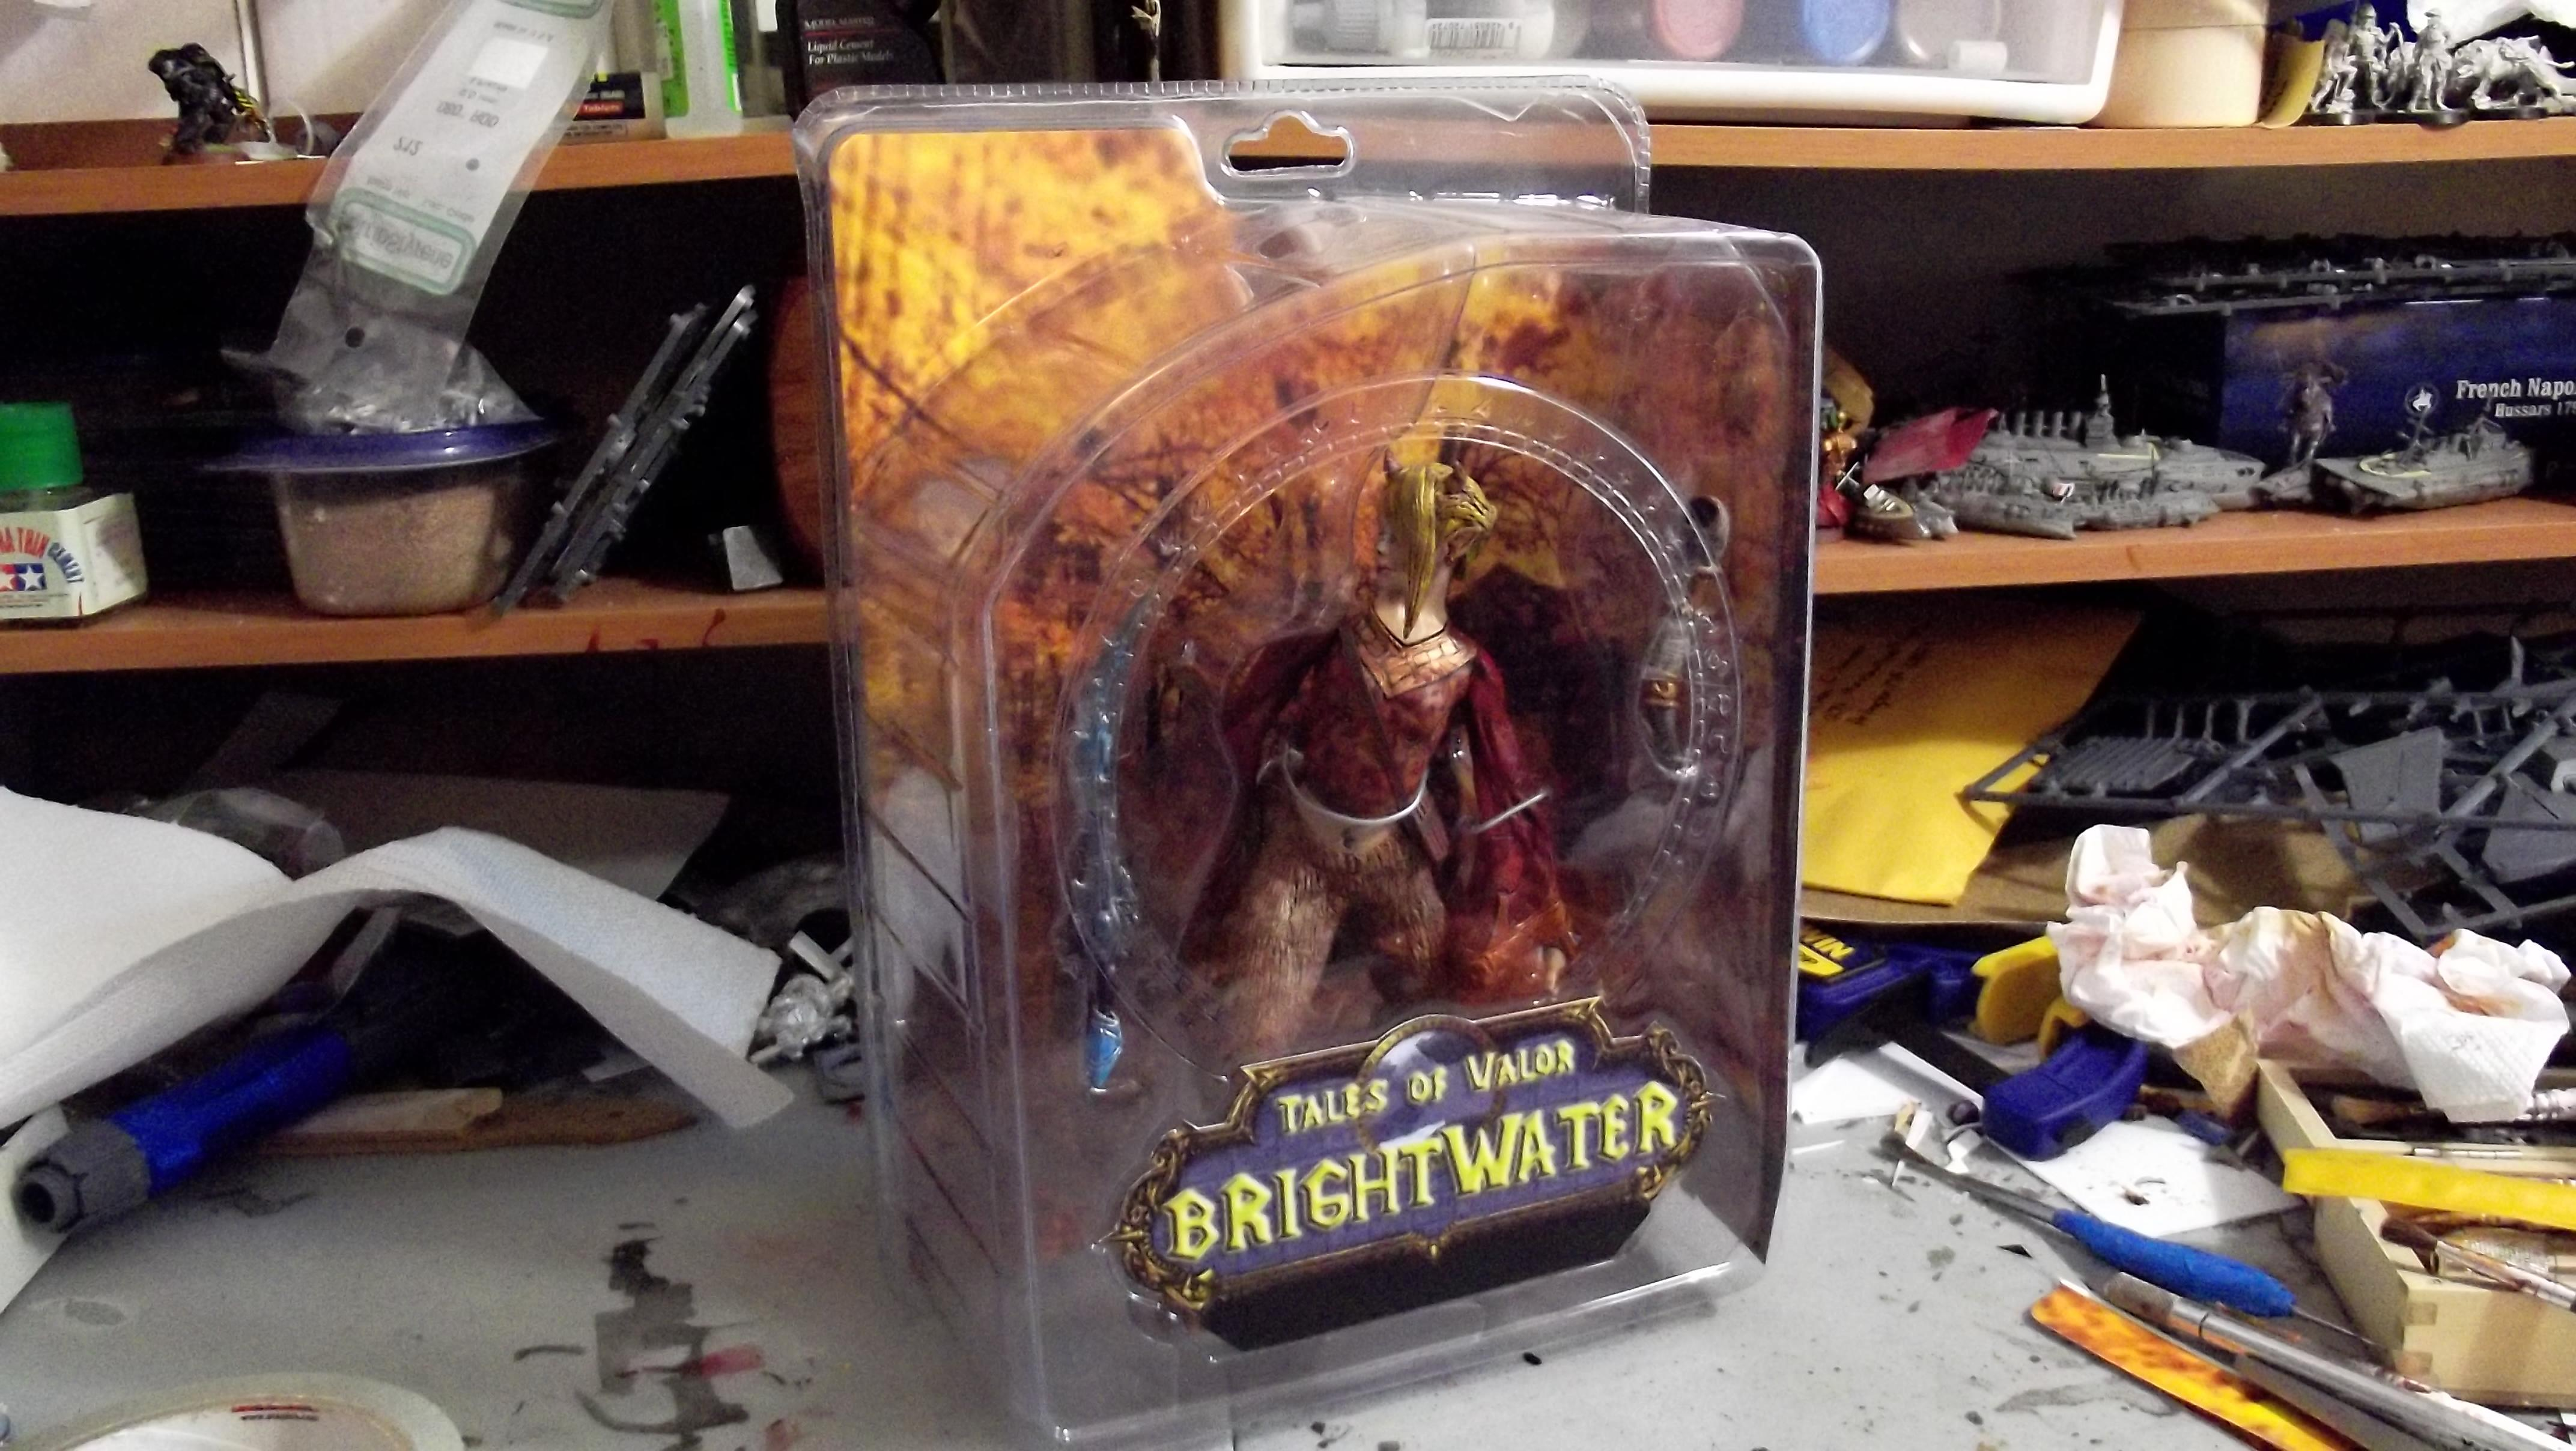 (in)action figure, packaged